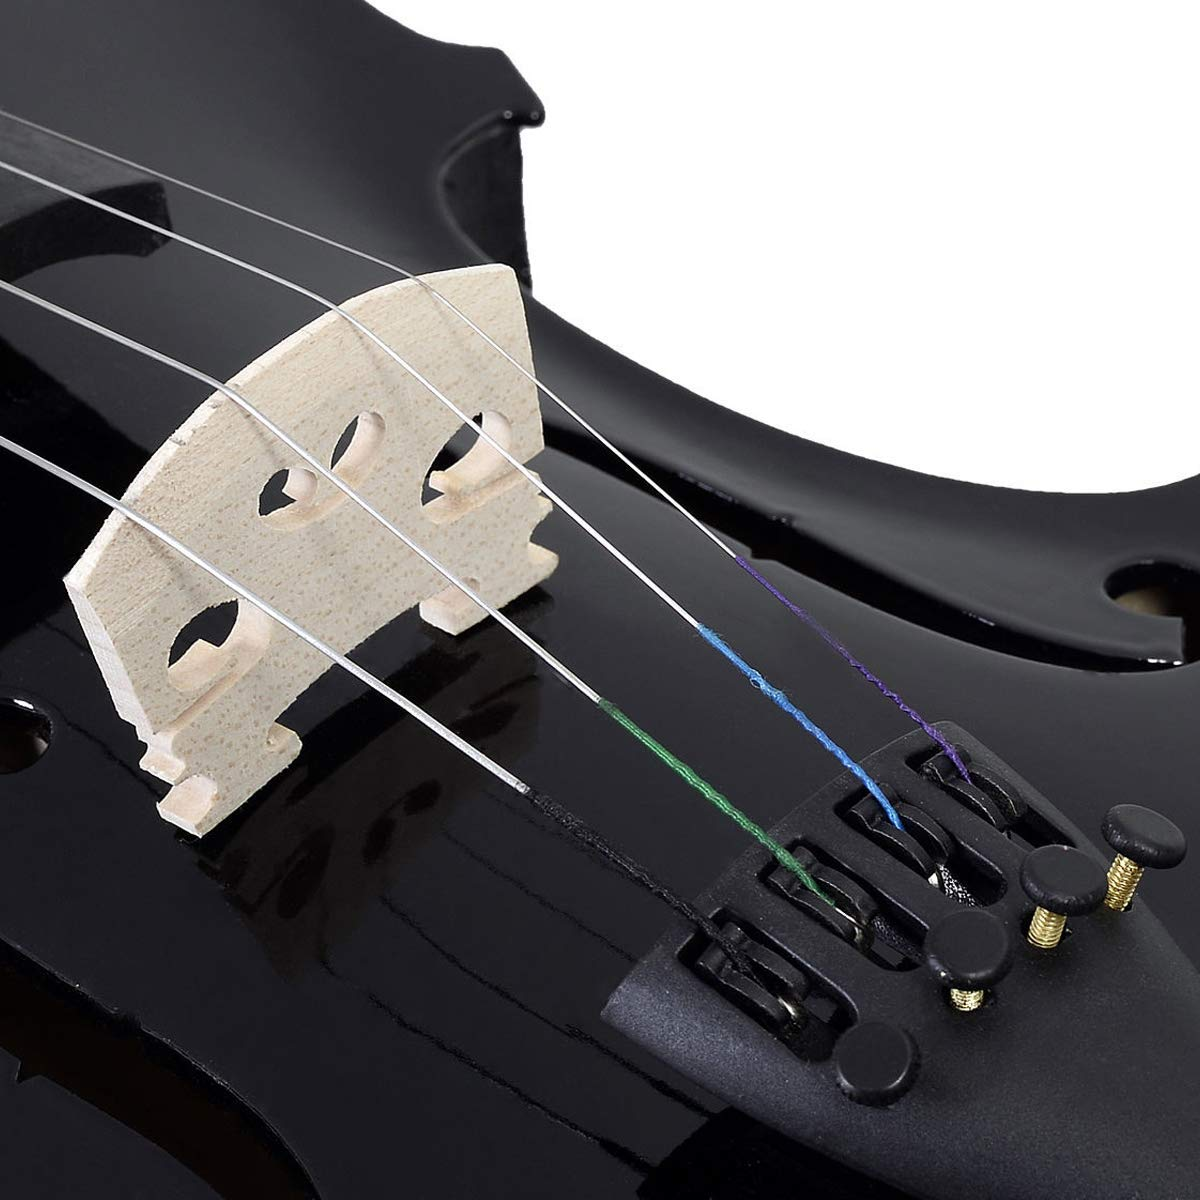 Goplus 4/4 Full Size Acoustic Violin Durable Natural Solid Wood Fiddle for Beginners and Students w/Case, Bow, Rosin and Chin Rest (Black) by Goplus (Image #5)